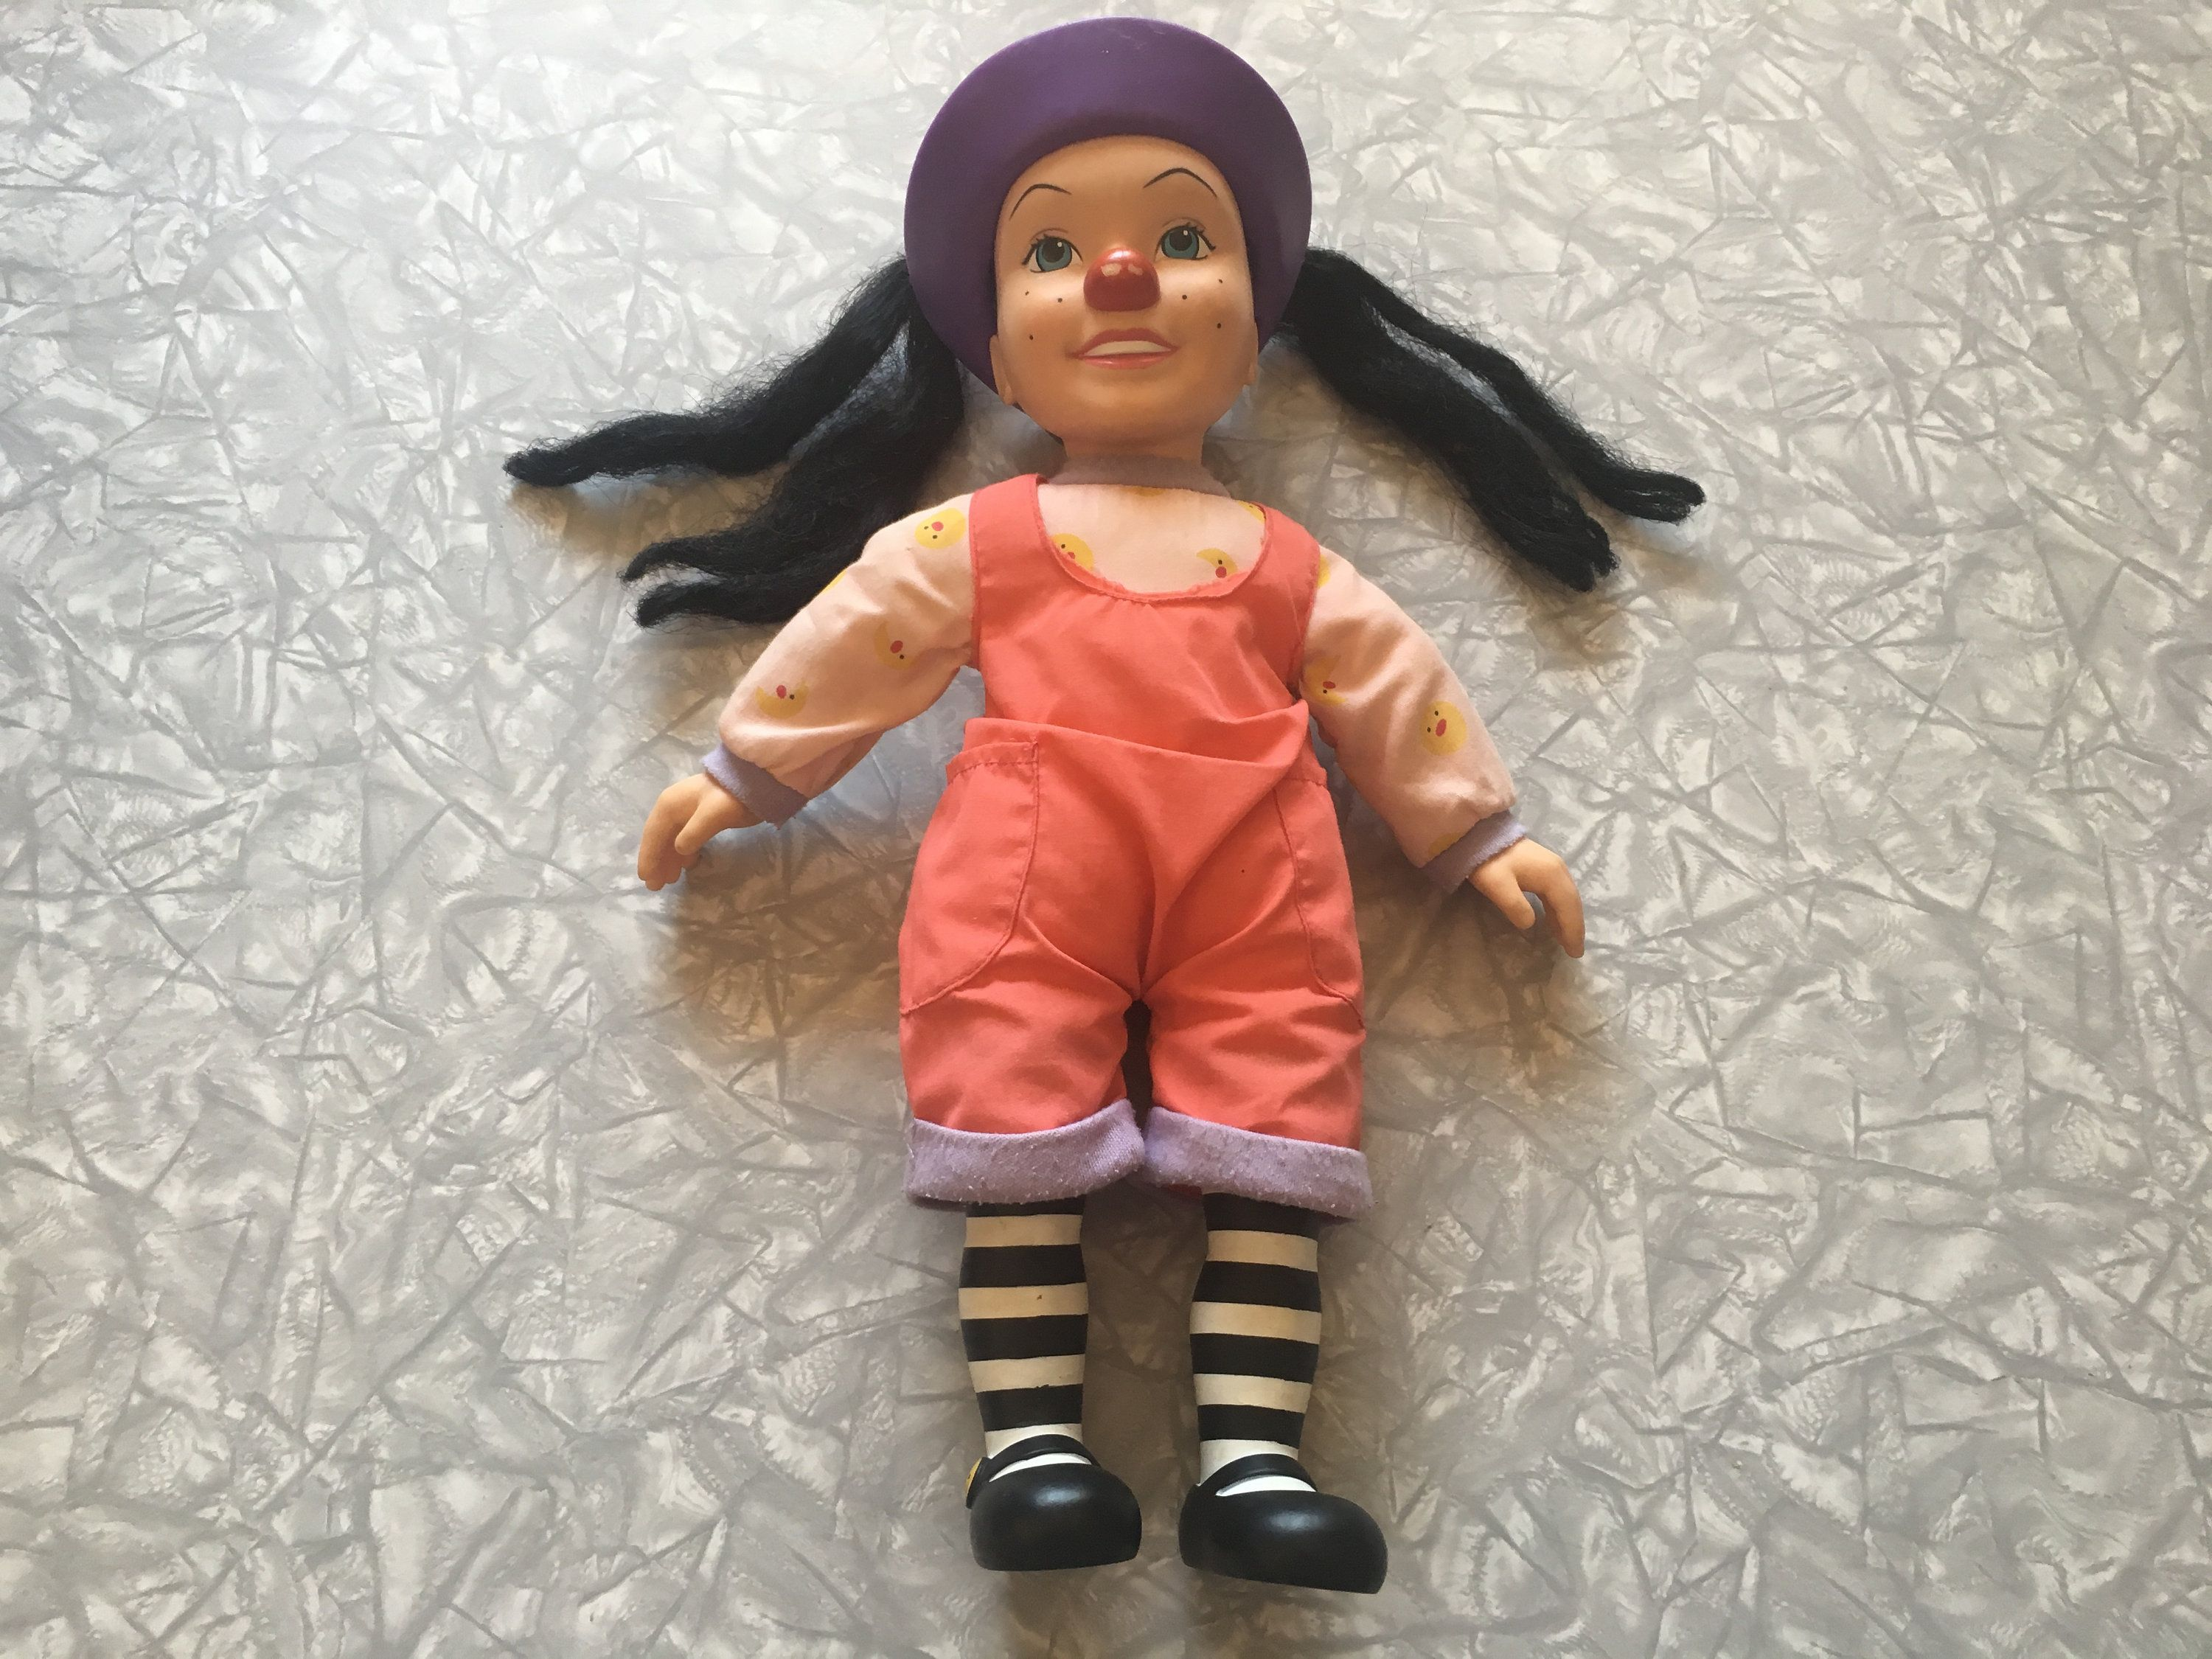 Big Couch Clown 1995 Big Comfy Couch Loonette The Clown Large Doll My Ebay